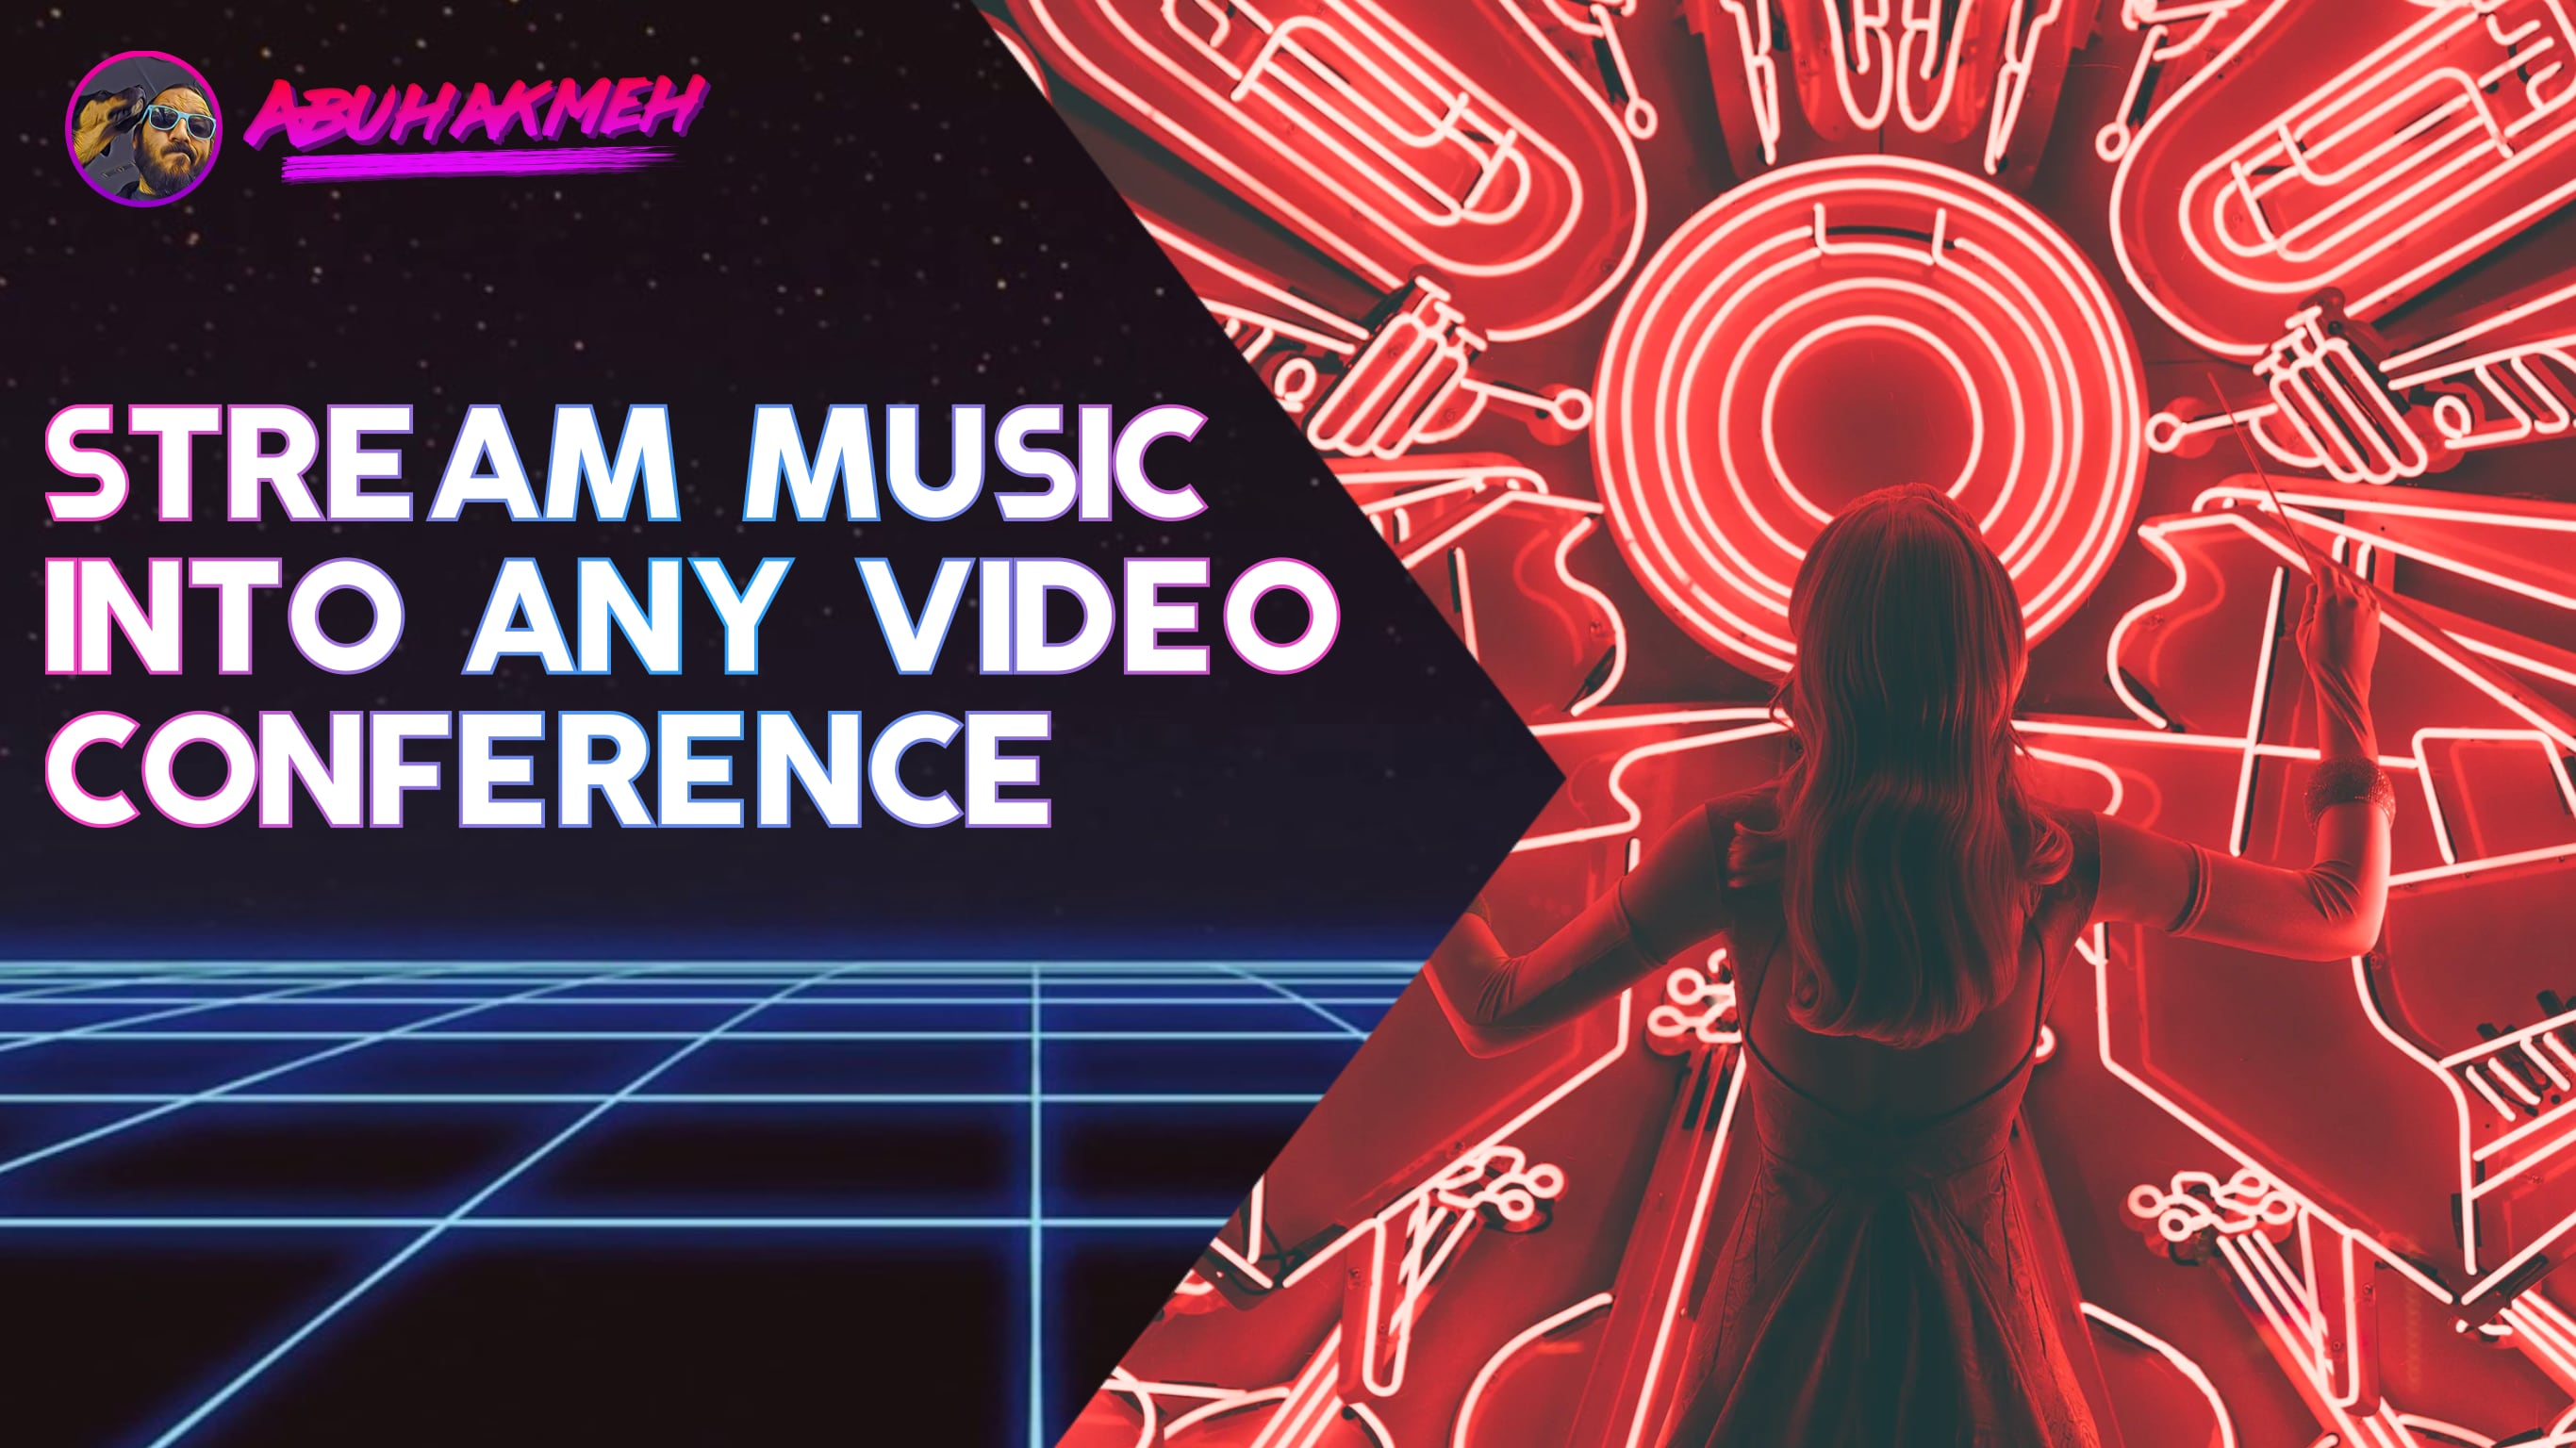 Stream Music Into Any Video Conference